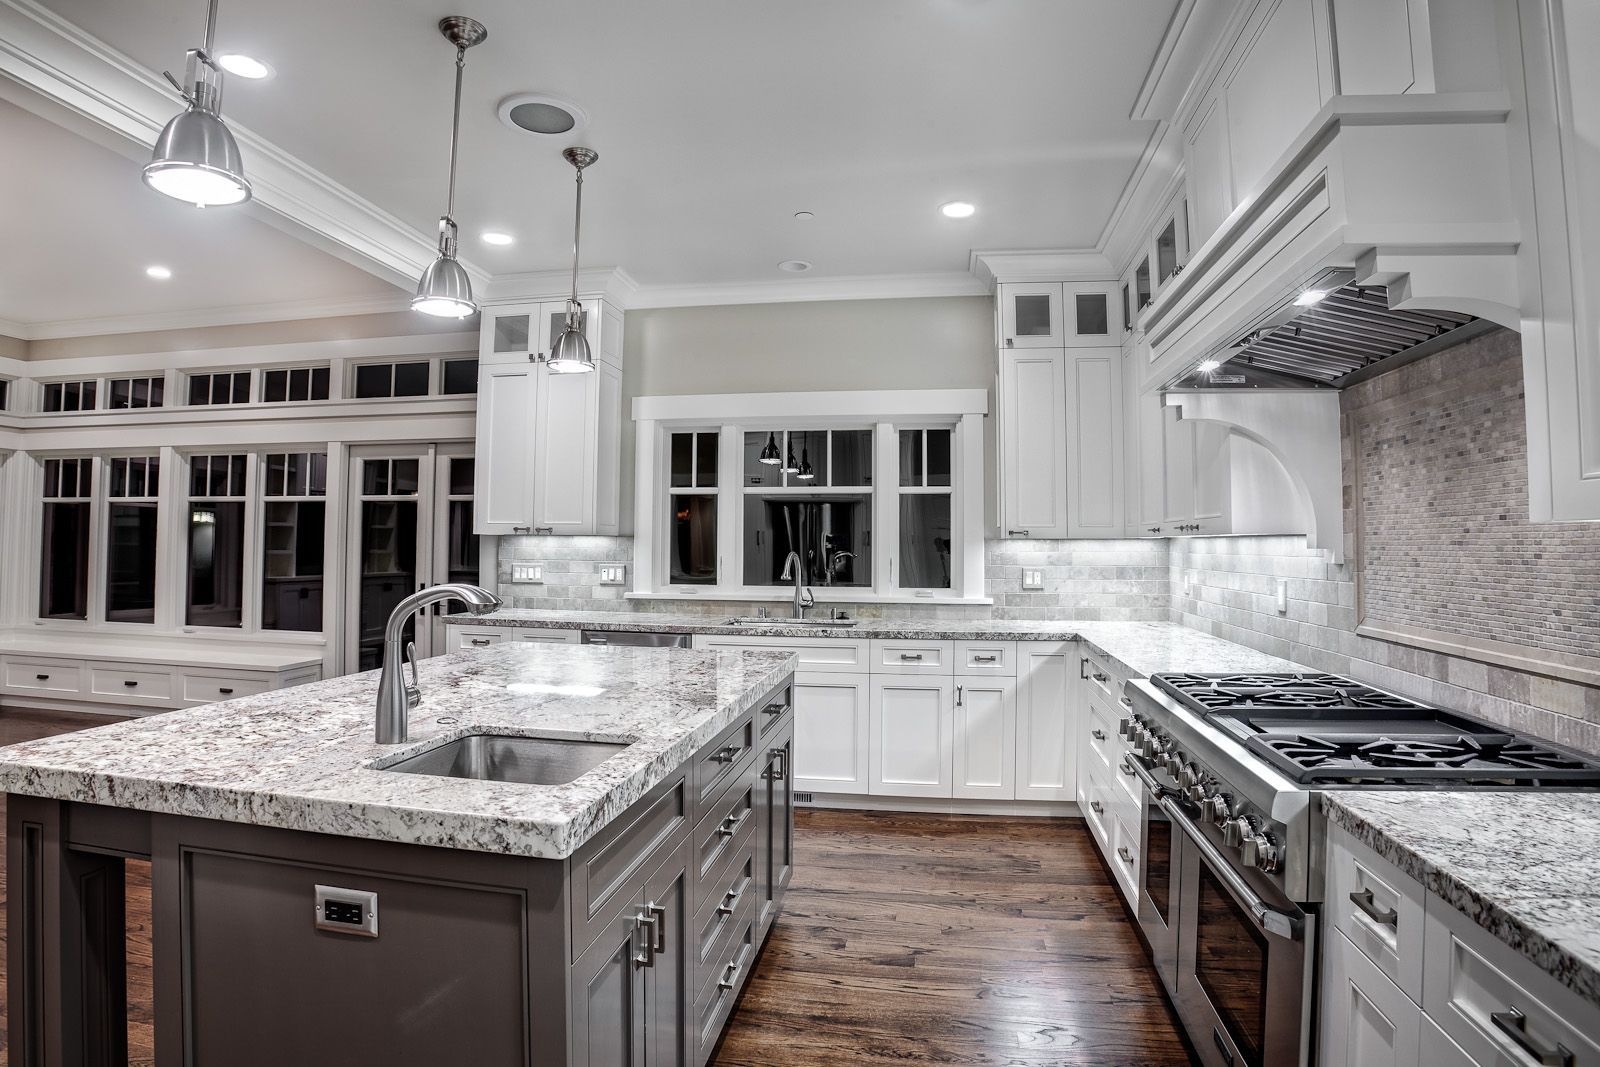 White Kitchen Cabinets With Gray Granite Countertops 27 Antique White Kitchen Cabinets Amazing Photos Gallery  White